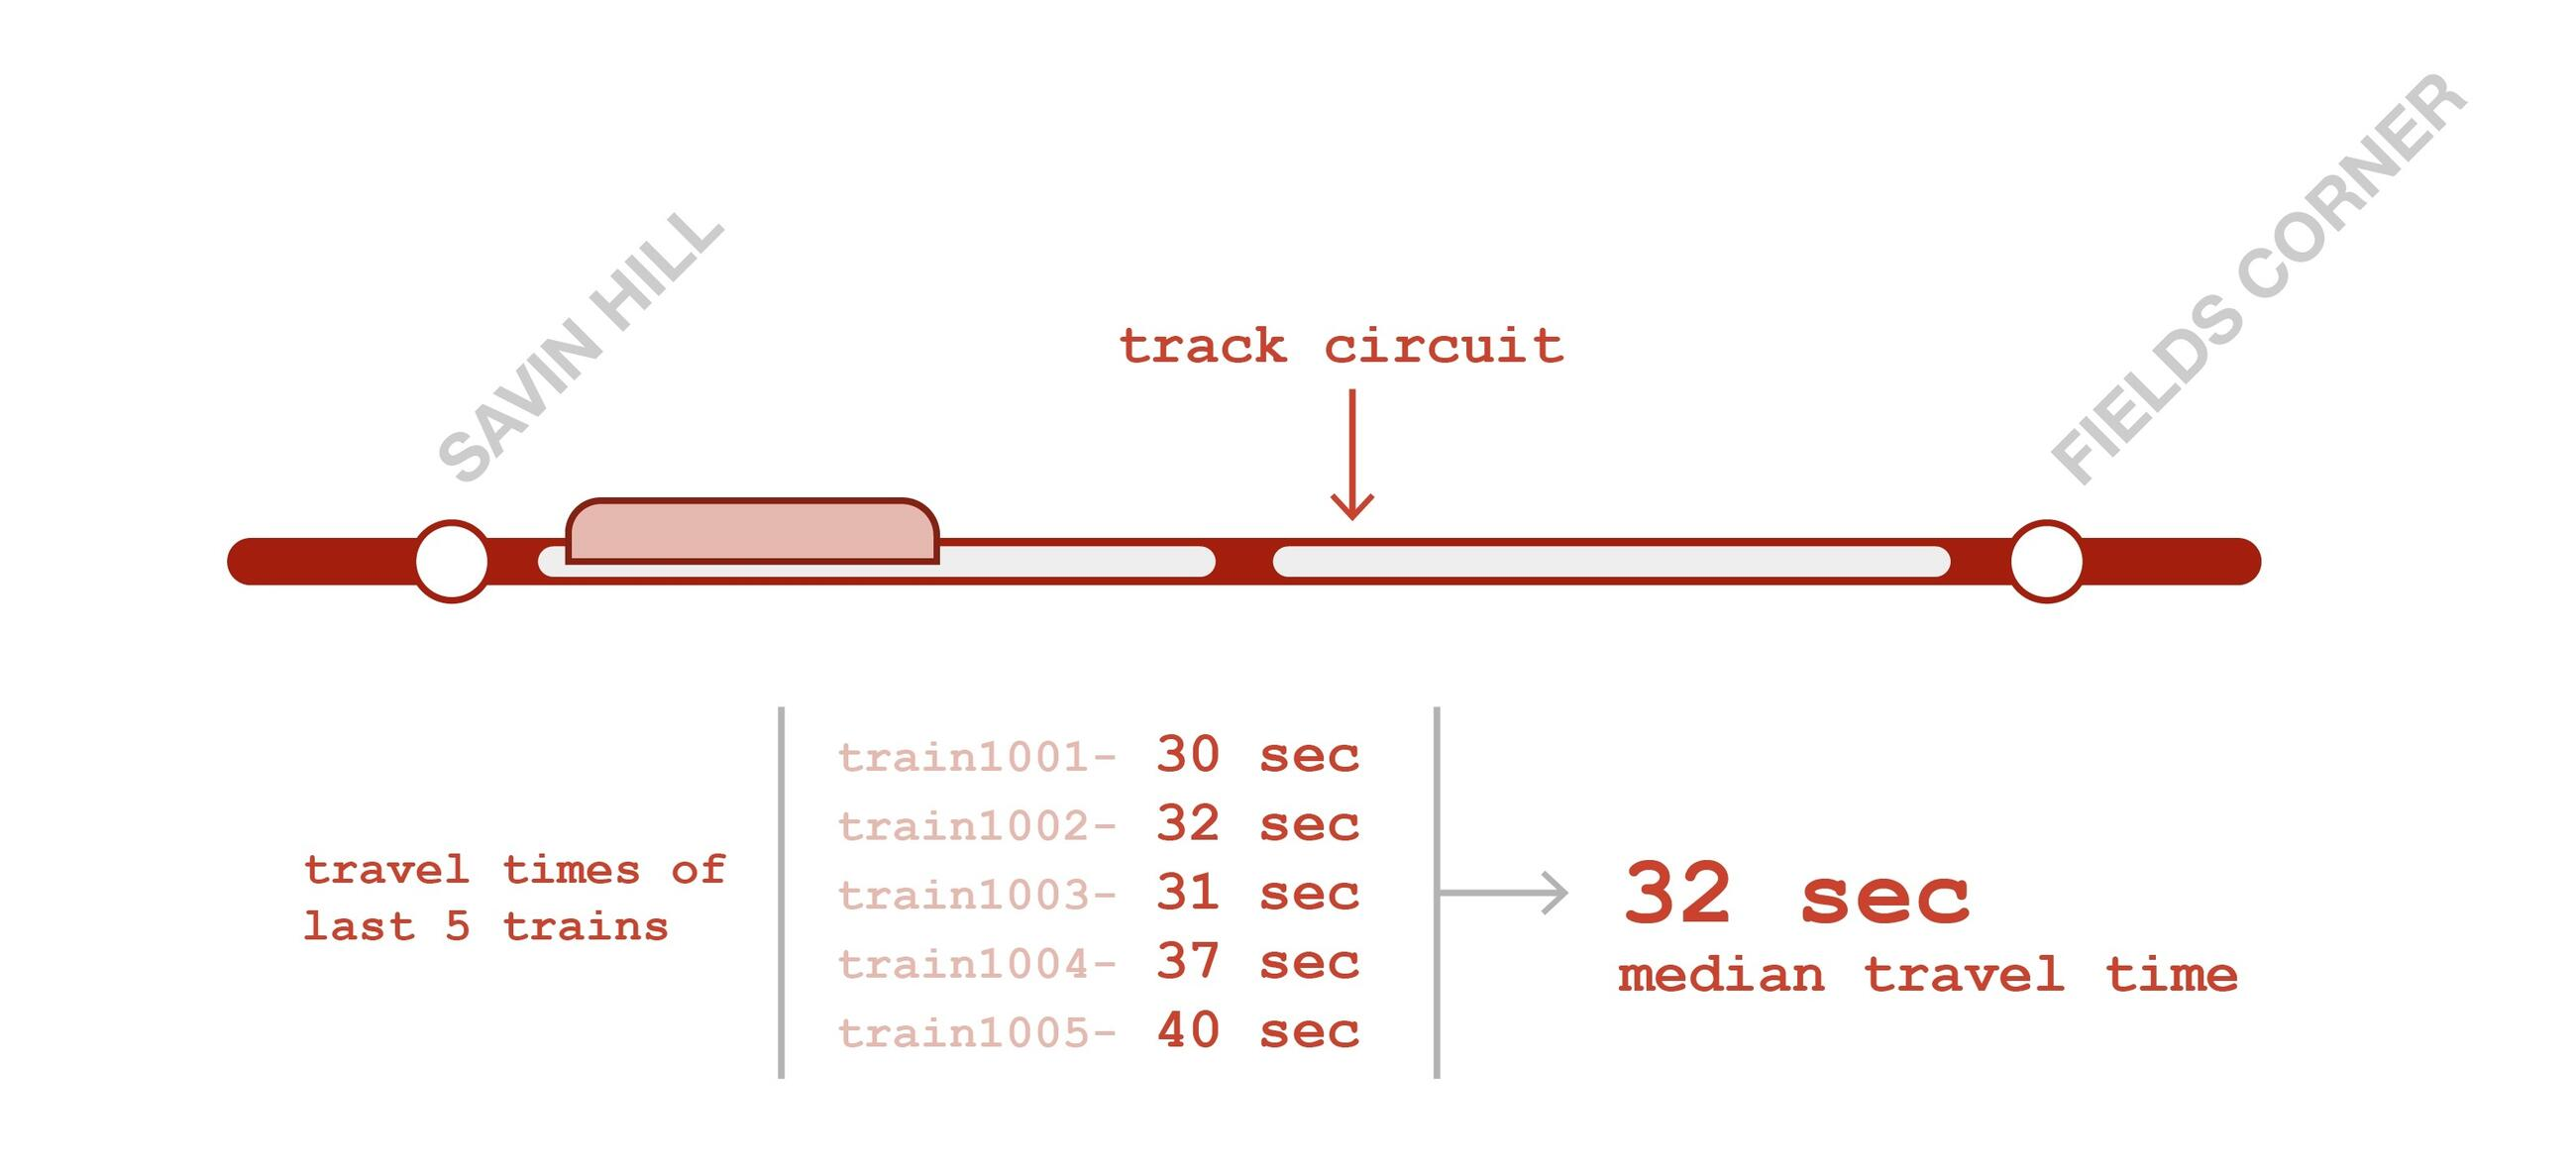 A red line representing train tracks, with white segments representing track circuits. Two segments of track circuits are marked between Savin Hill and Fields Corner stations. two stations. There